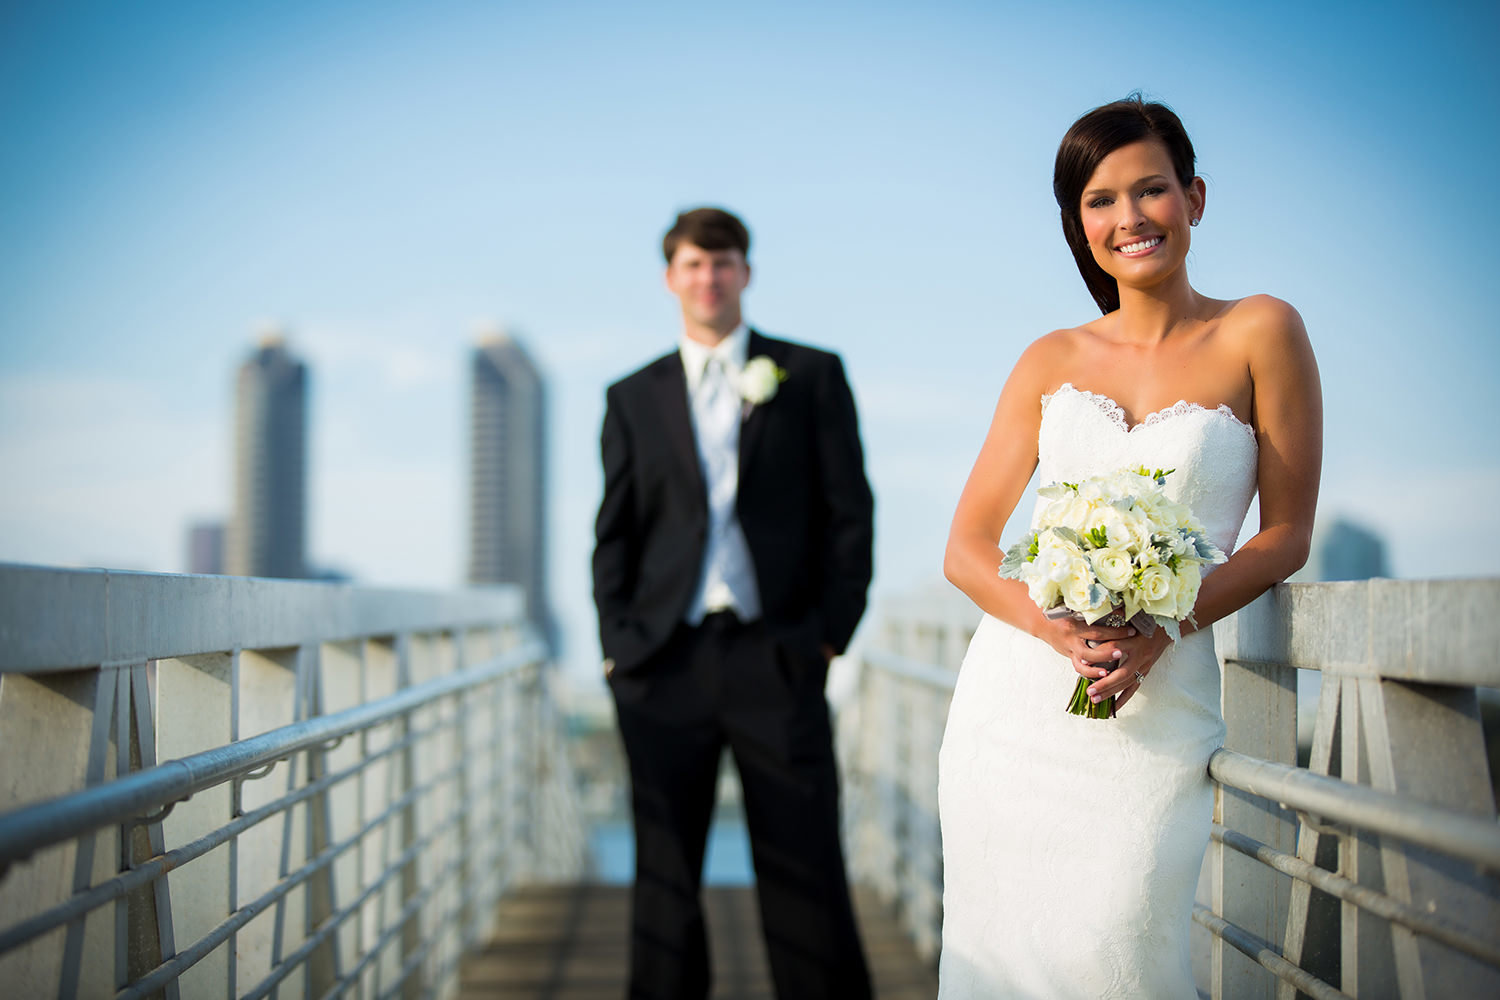 Classic bridal portrait at the Coronado Marina